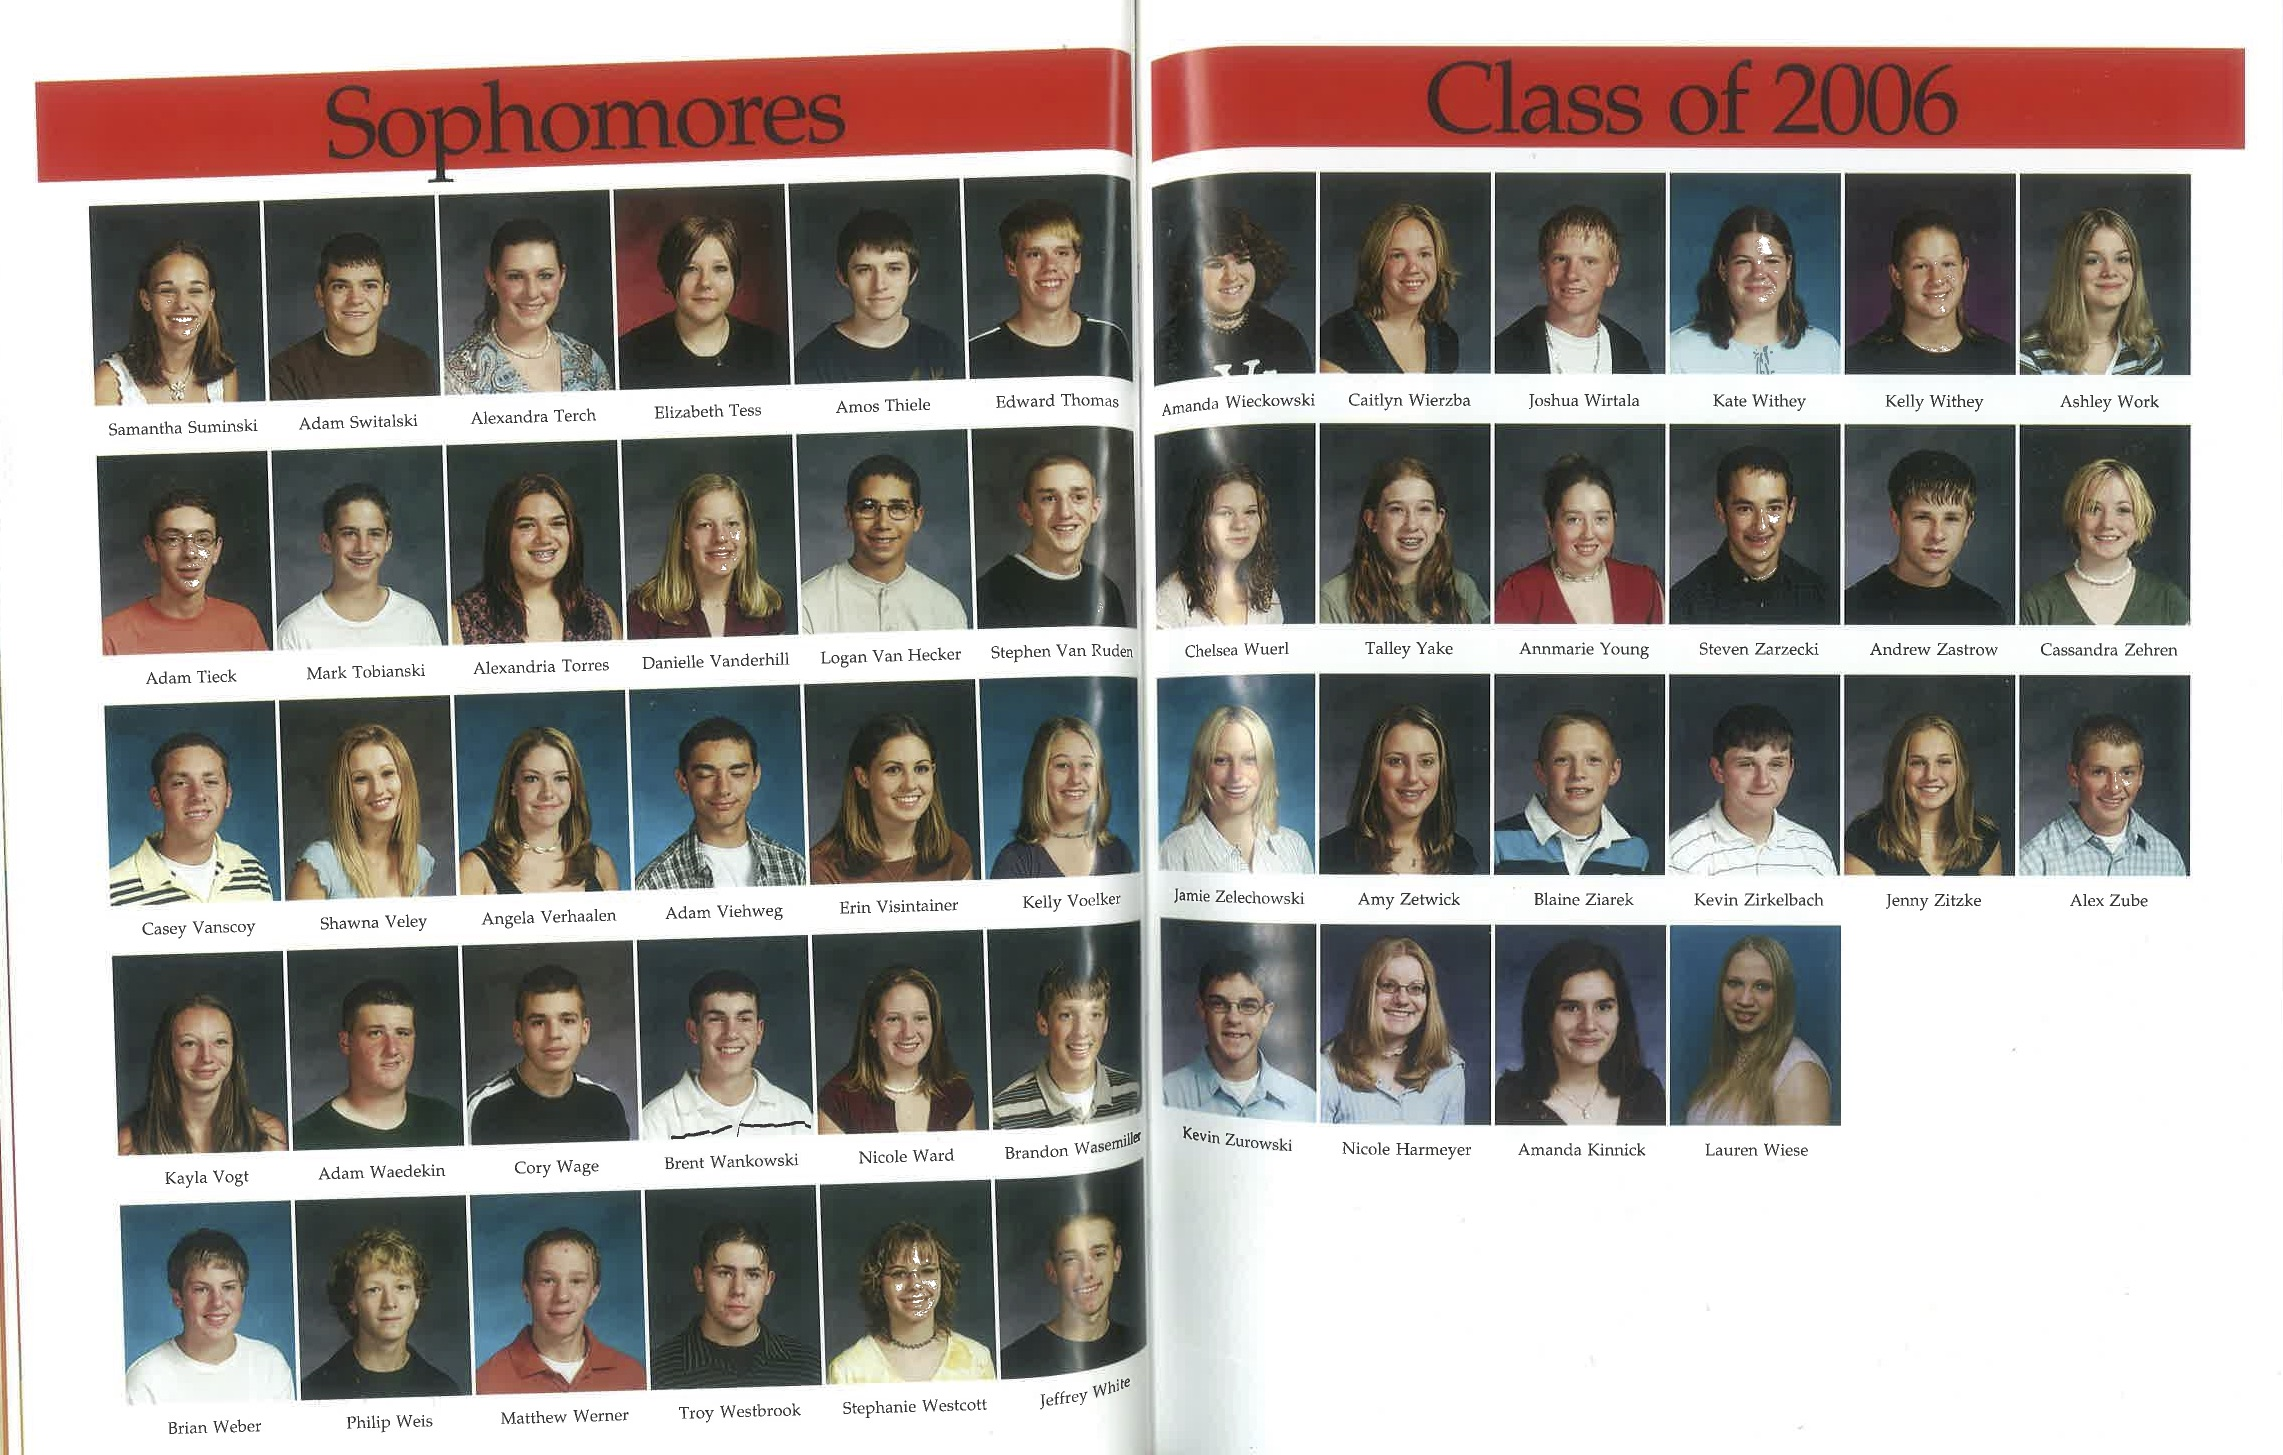 2004_Yearbook_36.jpg